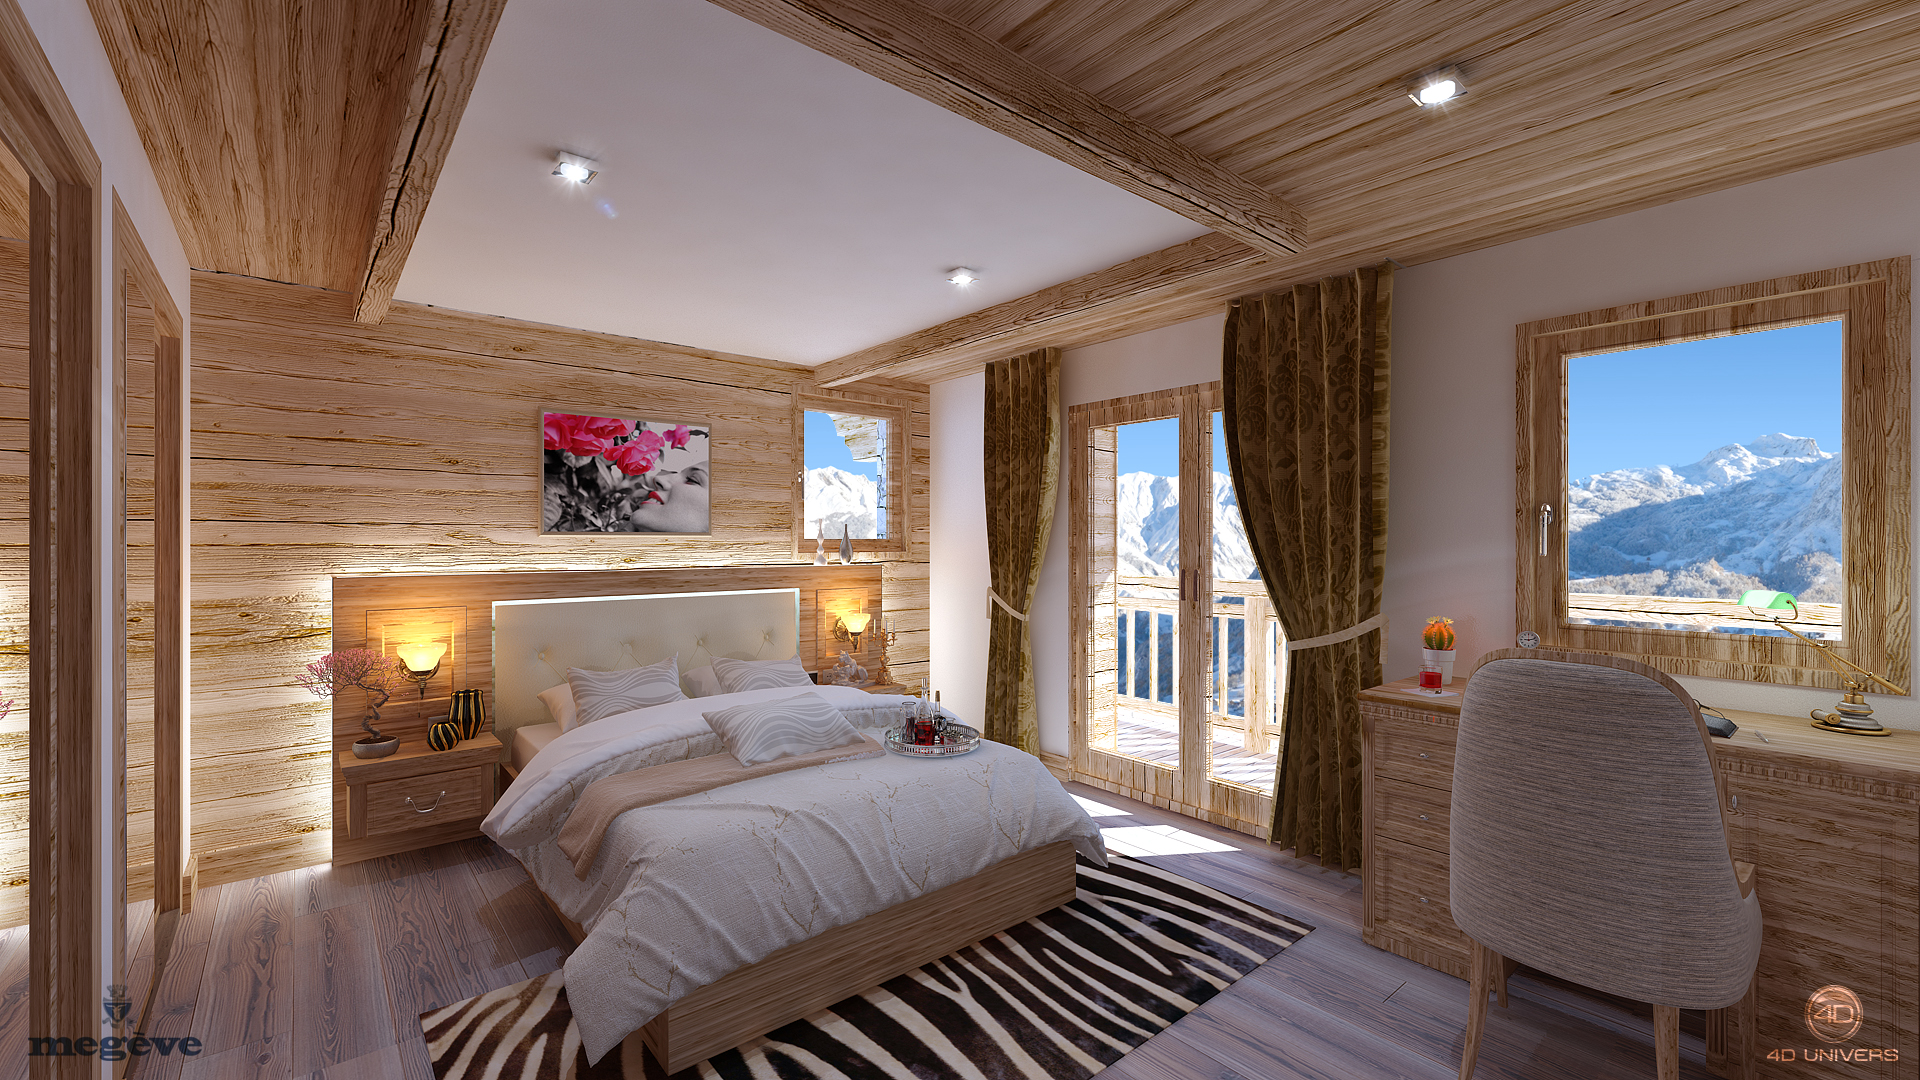 Chalet 3d 4d univers studio animation 3d for Interieur chambre